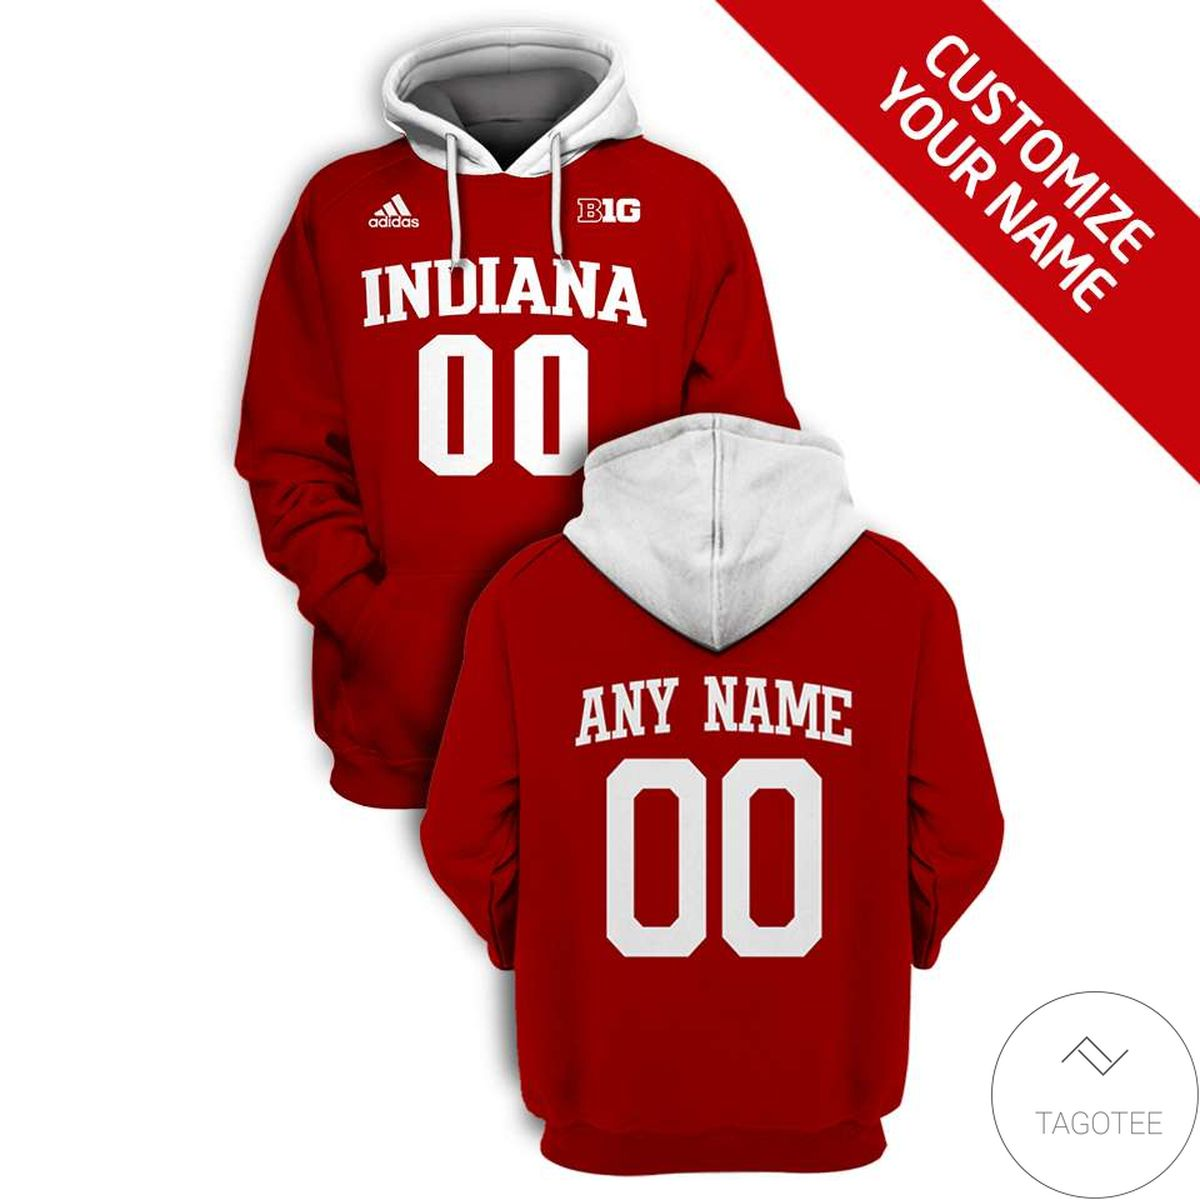 Very Good Quality Personalized Indiana Hoosiers Branded Unisex 3d Hoodie